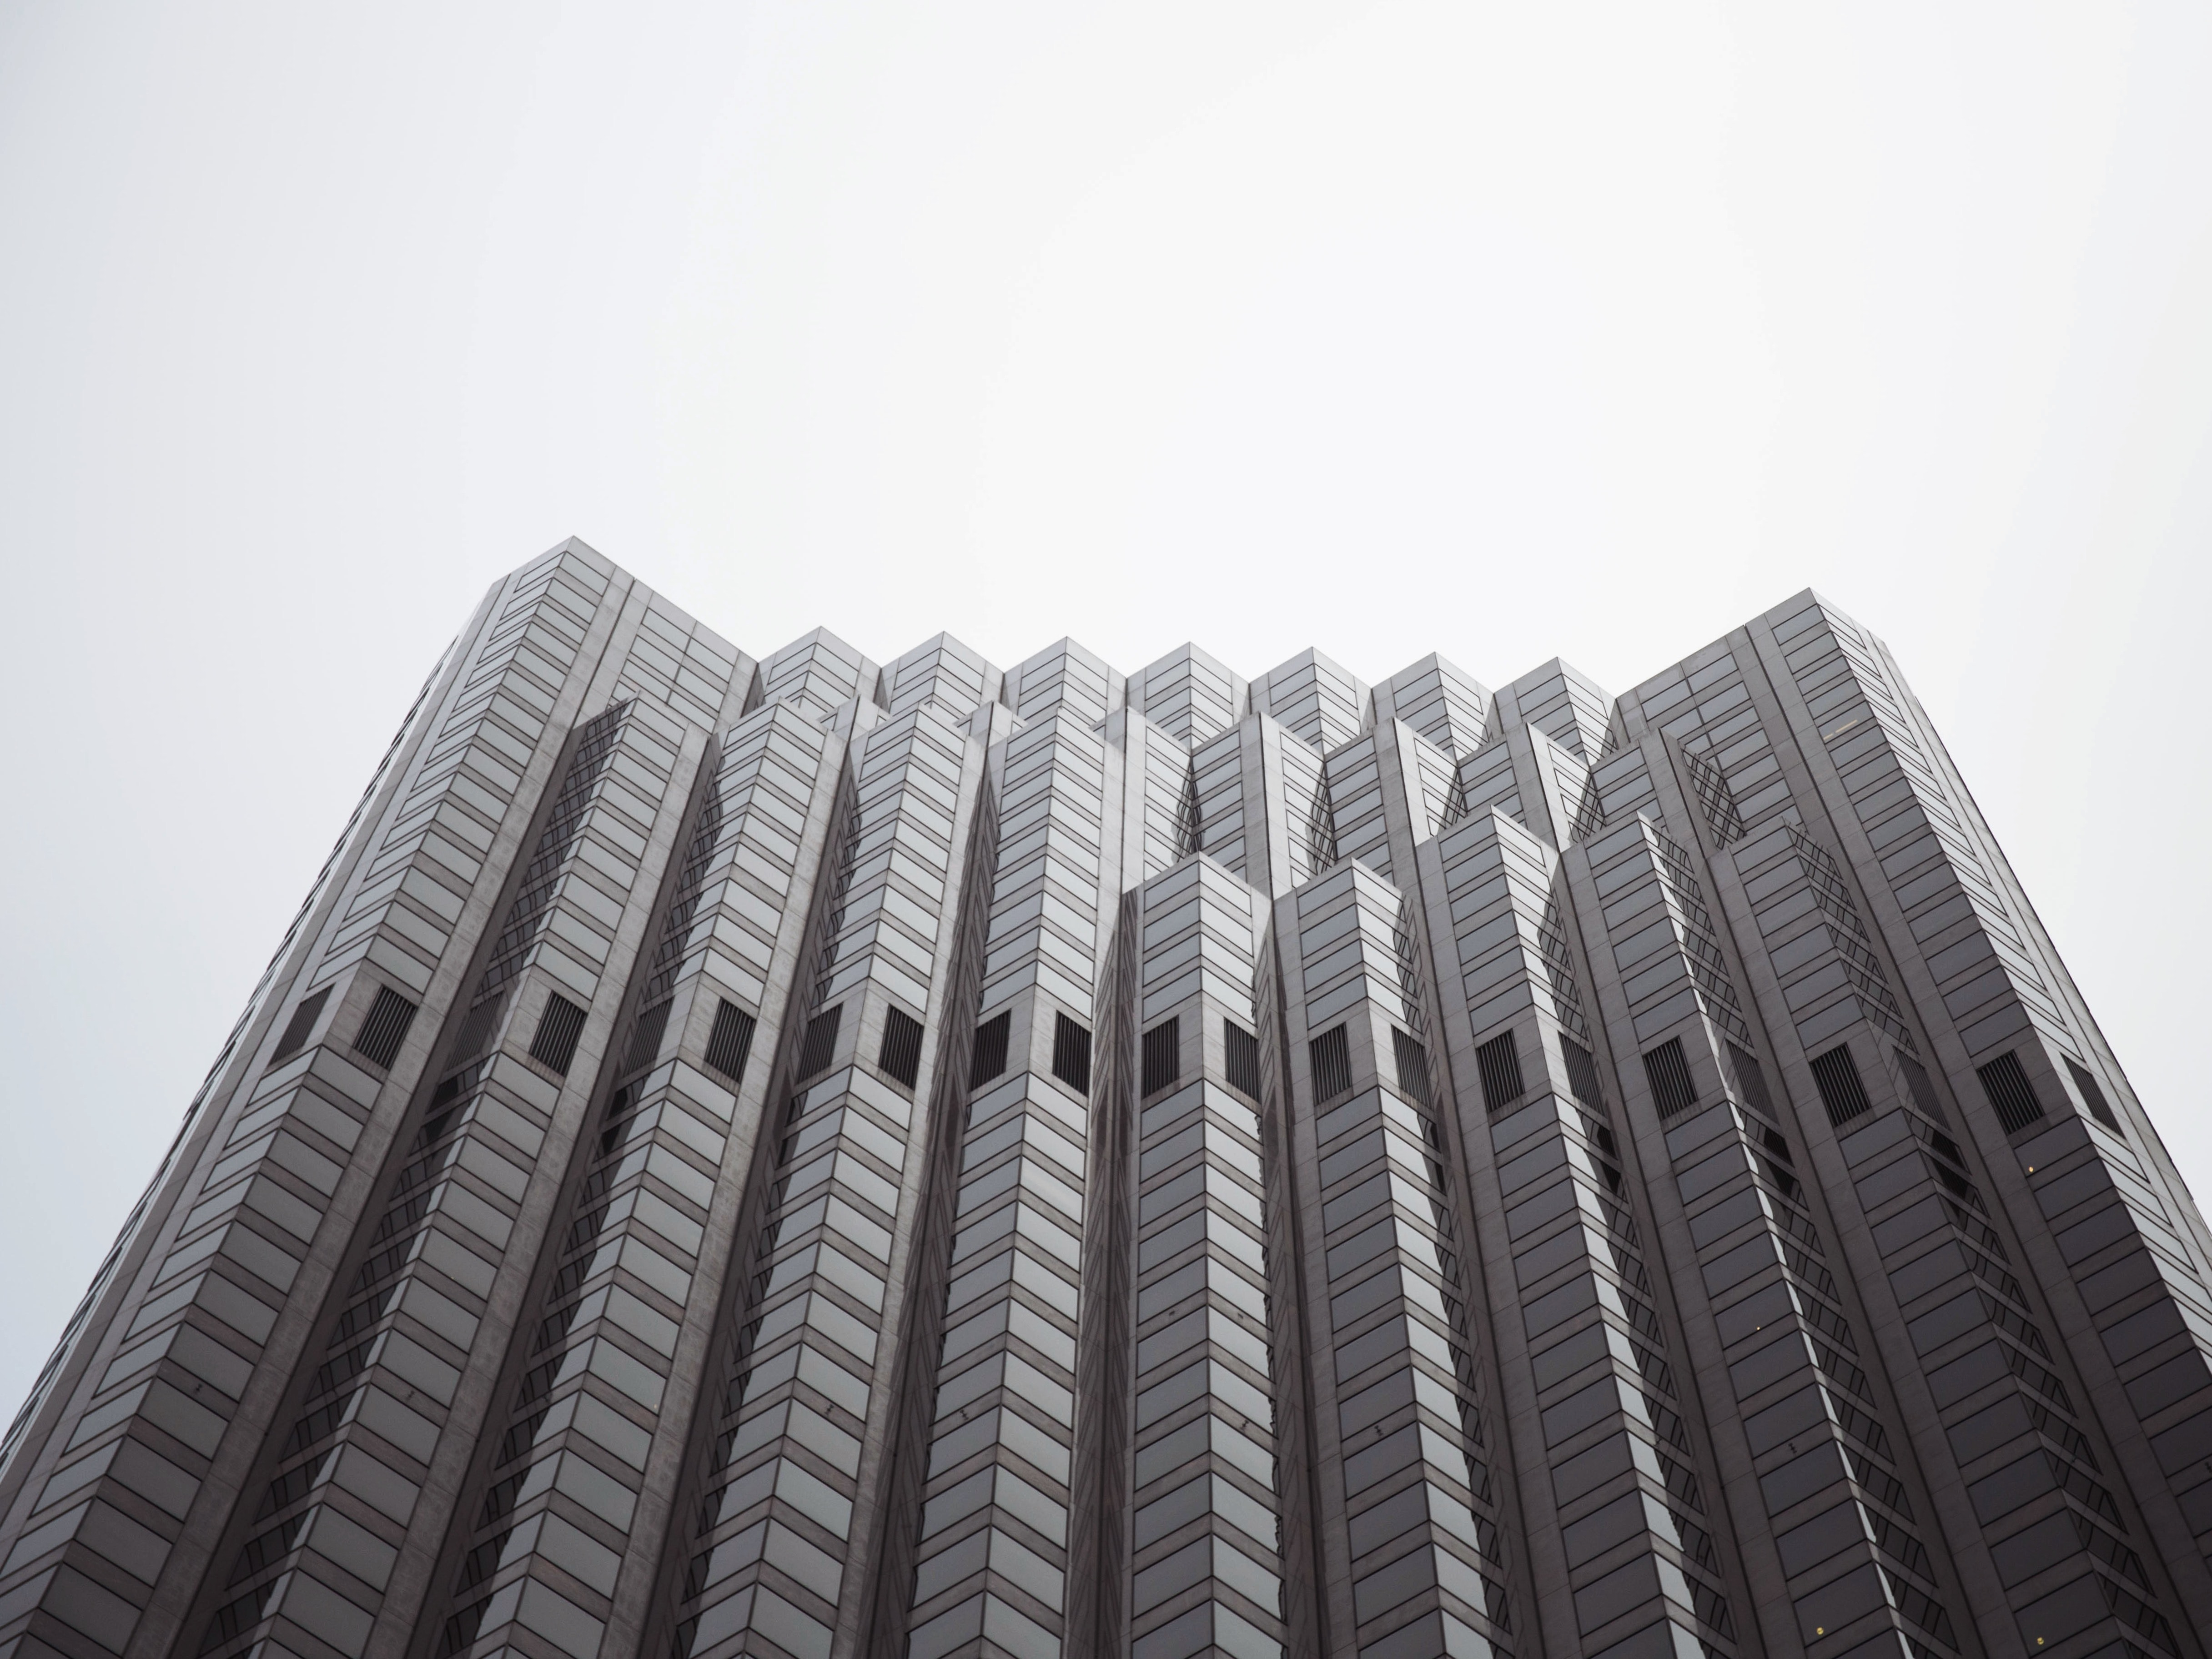 A tall building with multiple towers fused together into a wavy pattern